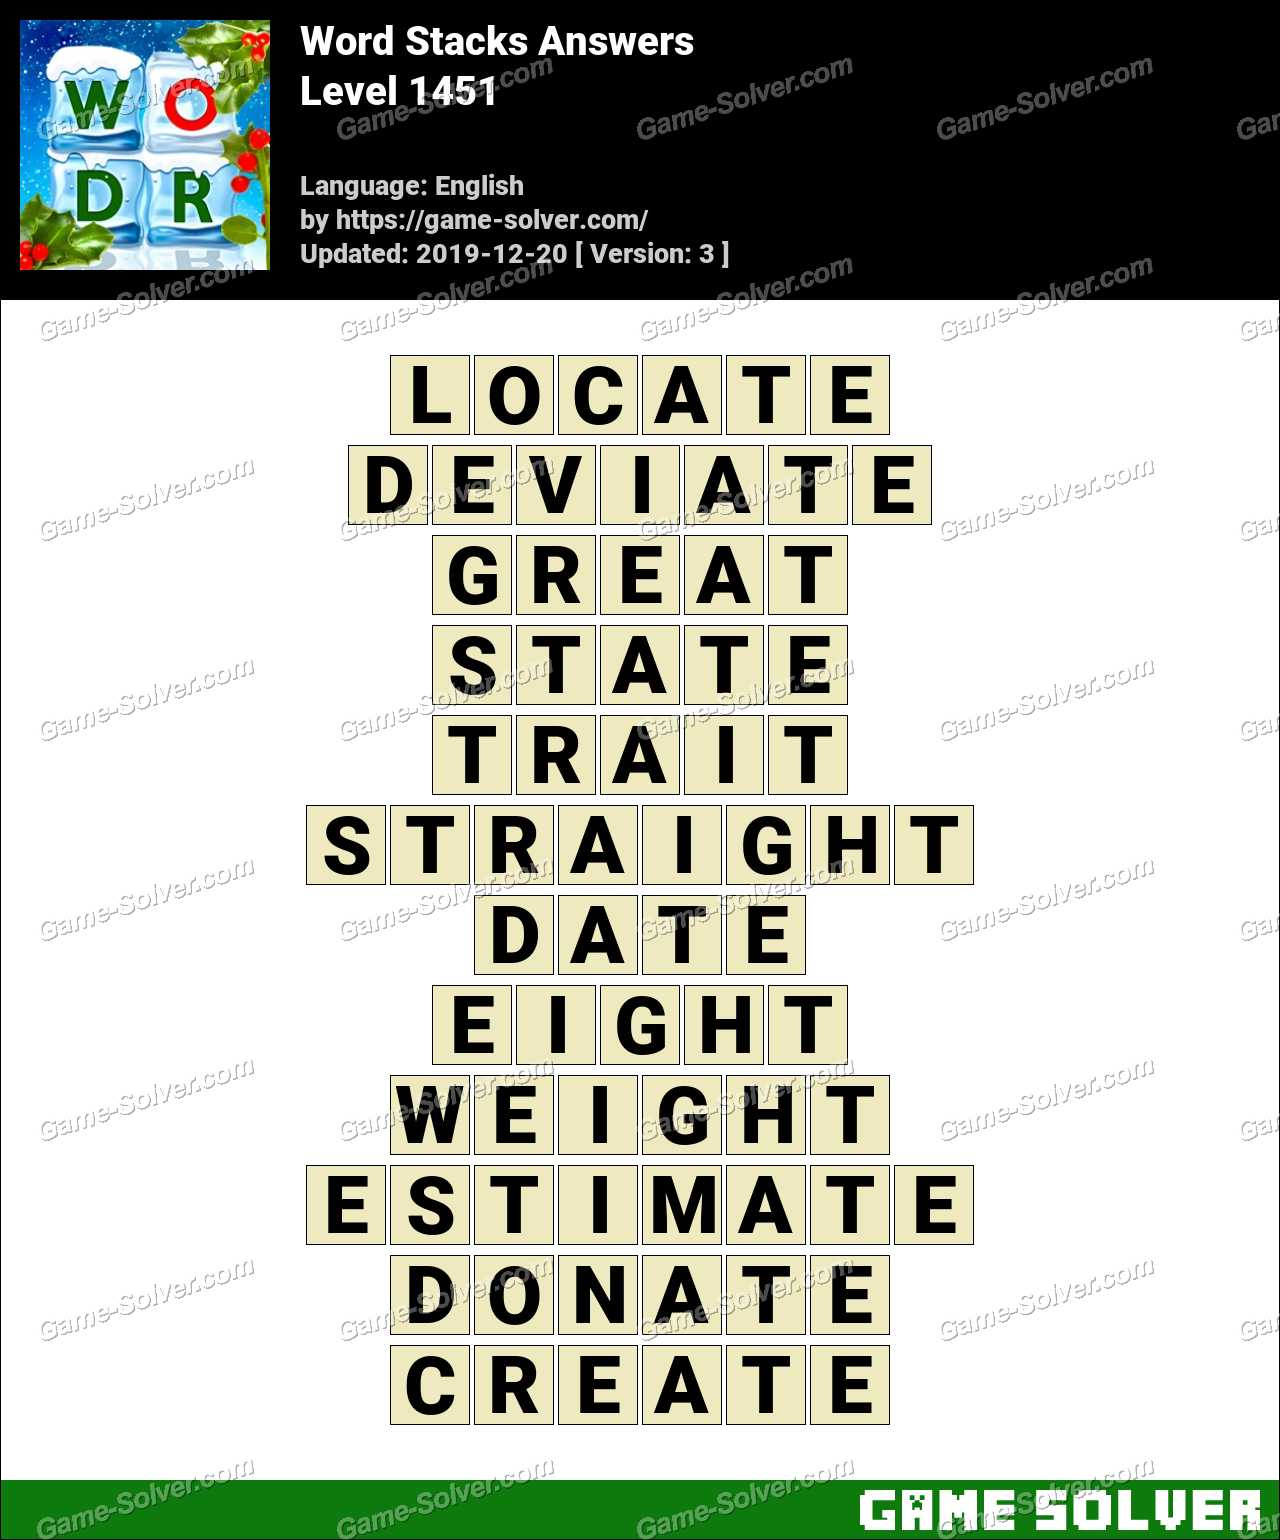 Word Stacks Level 1451 Answers